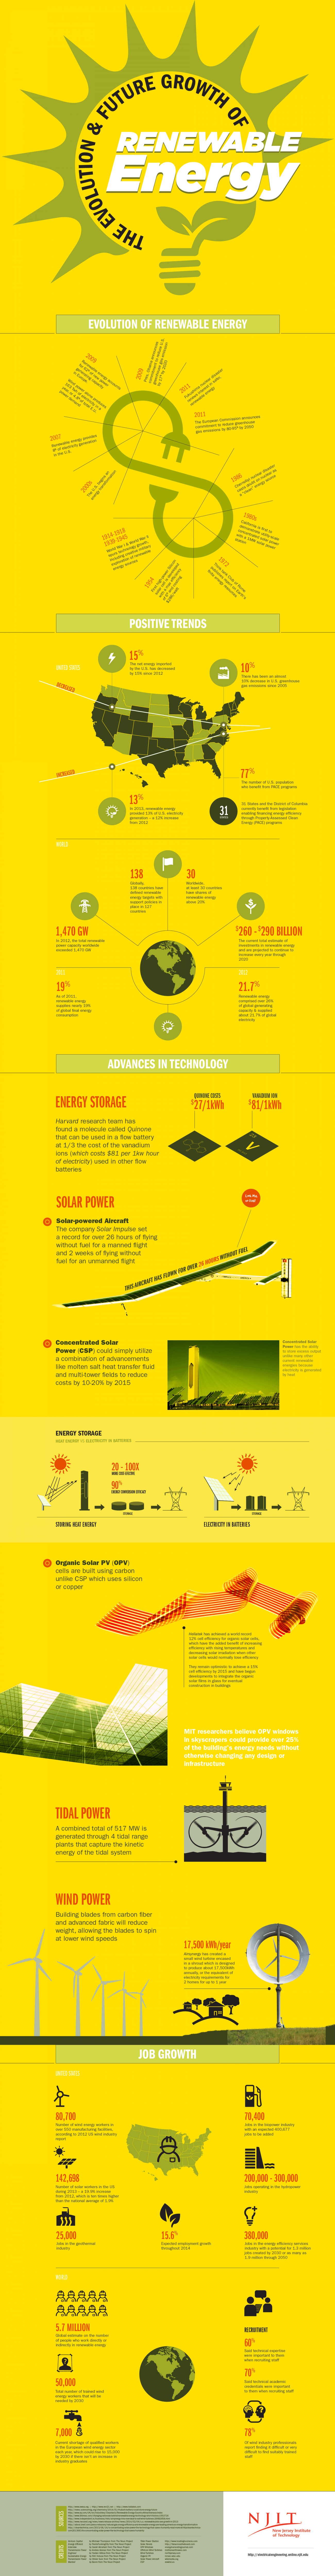 The Future of Renewable Energy Infographic